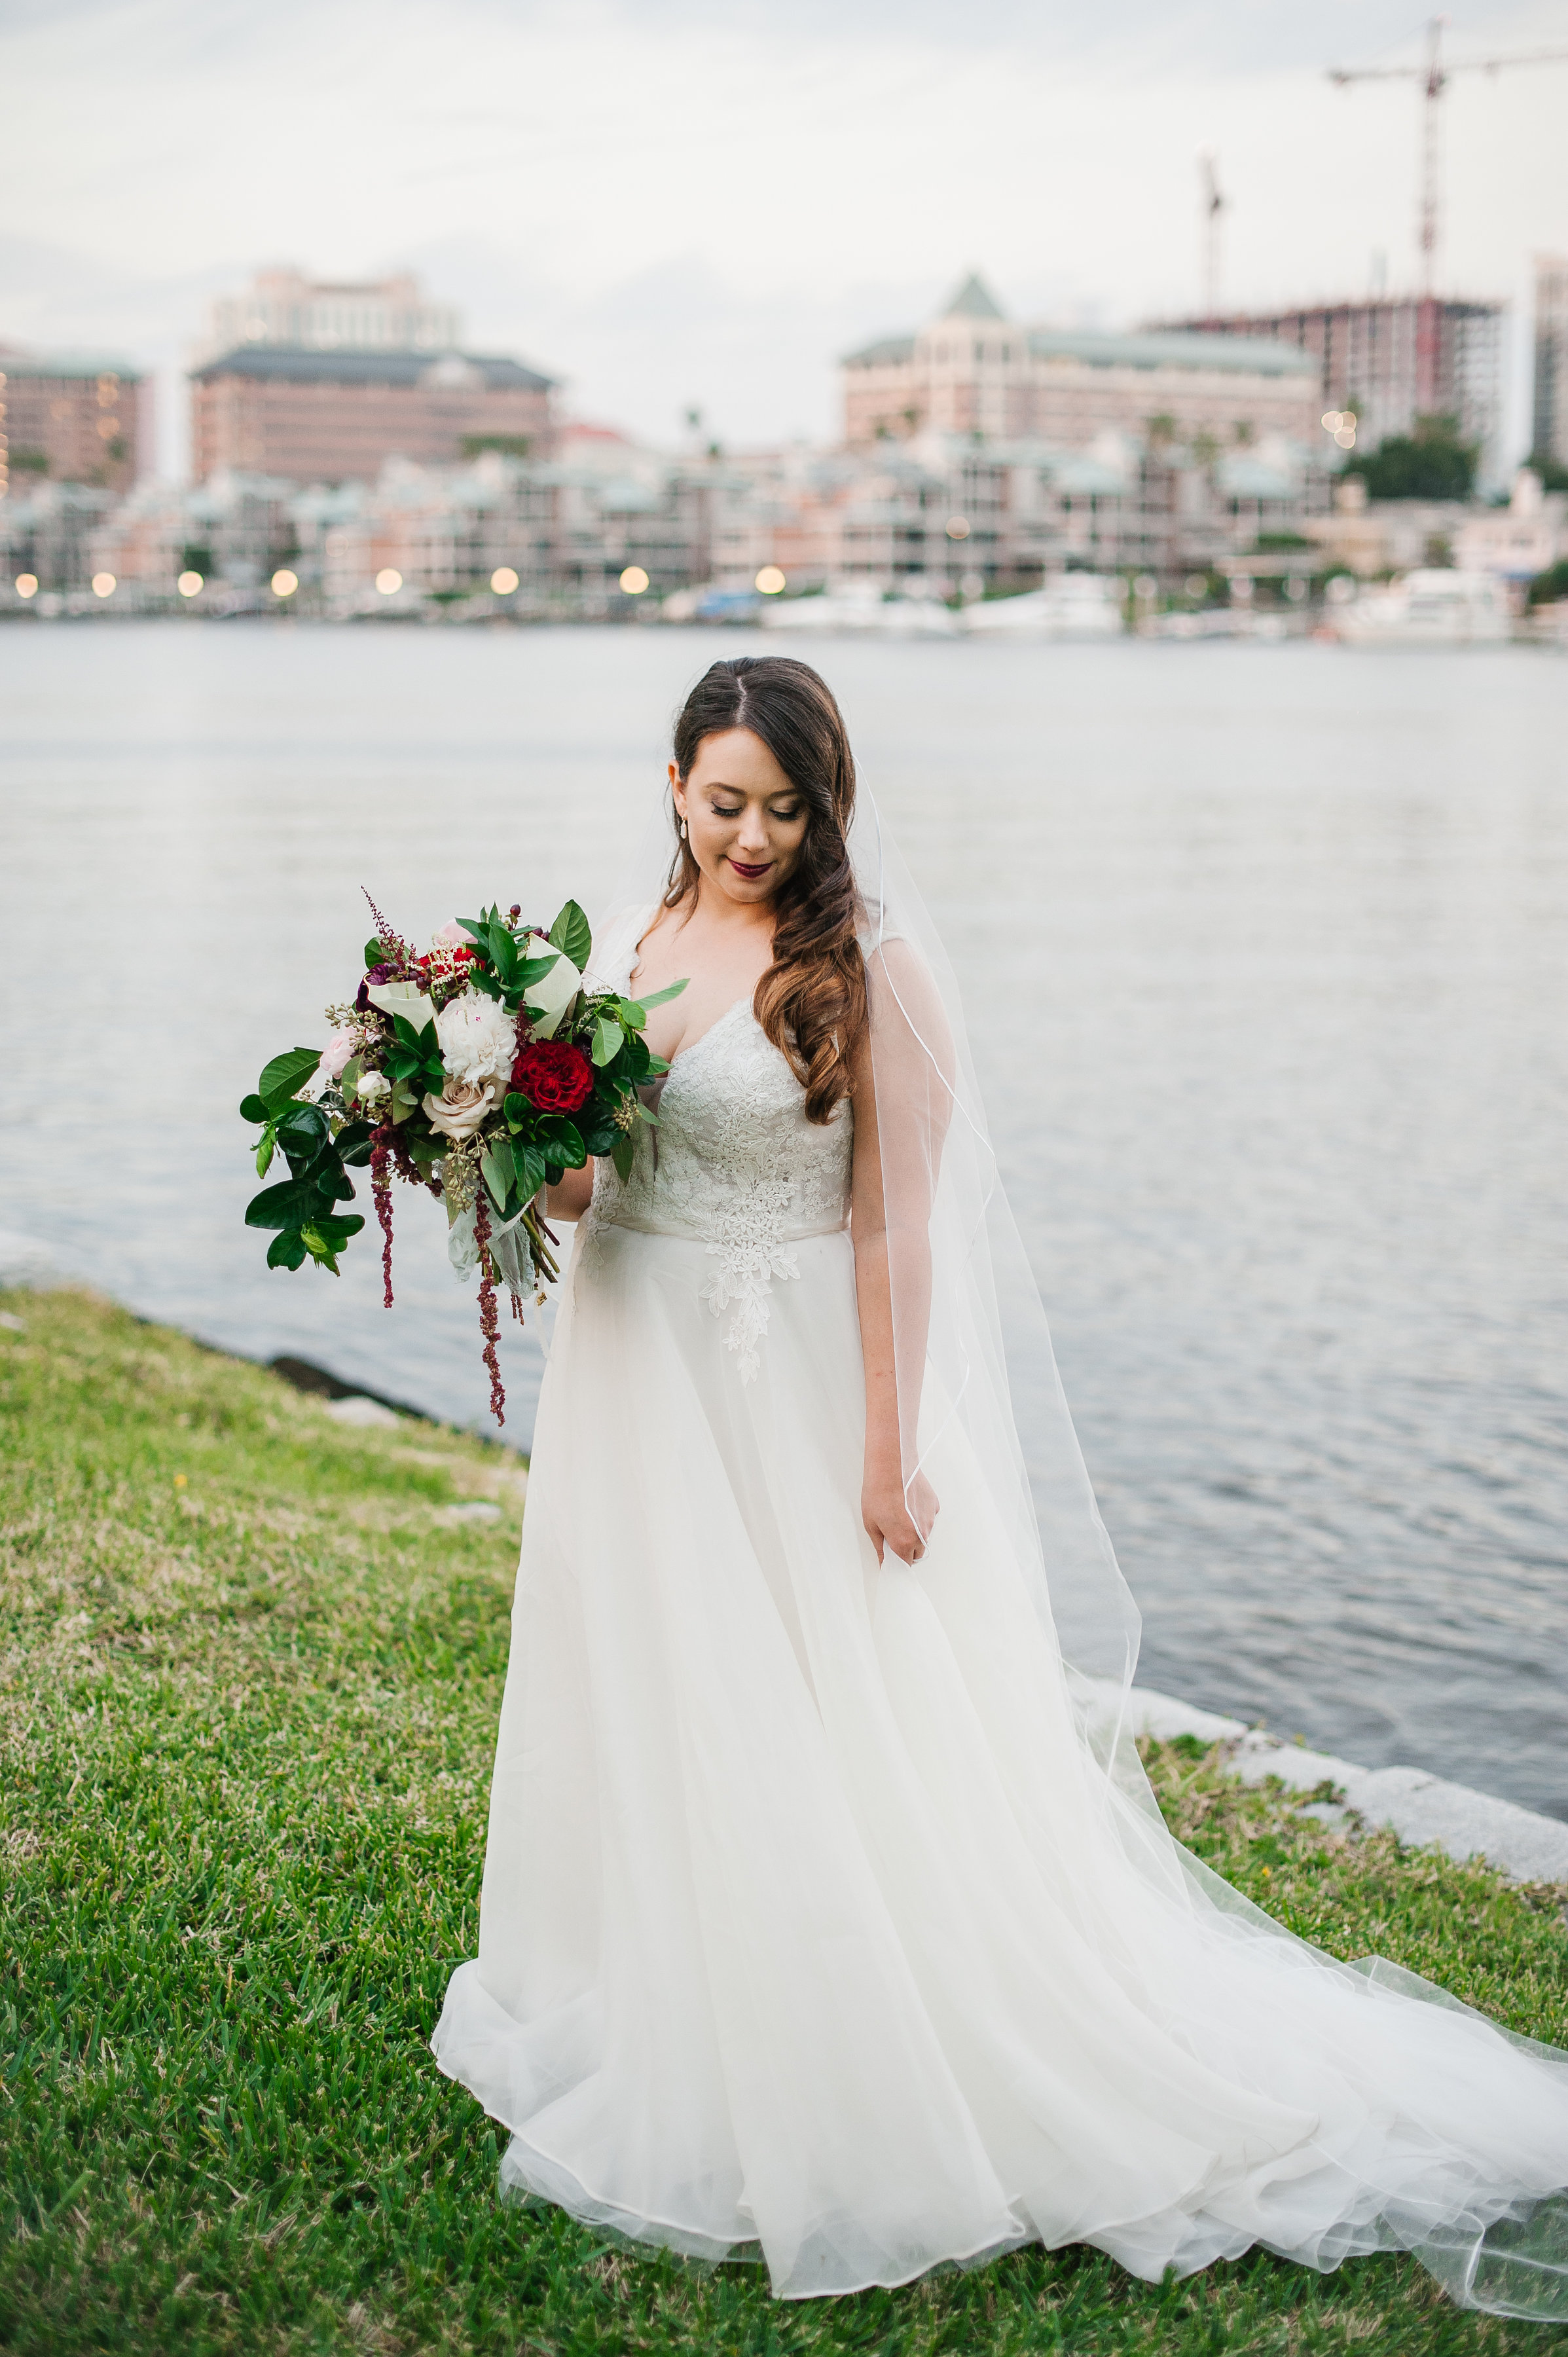 The bride wore a lace and tulle gown with a plunging lace illusion neckline;her dress was complimented by her organic bouquet of garden roses,greenery, and dripping amaranthus, with her look finished off with a dark berry lipstick to match the garnet and marsala tones in her bouquet.